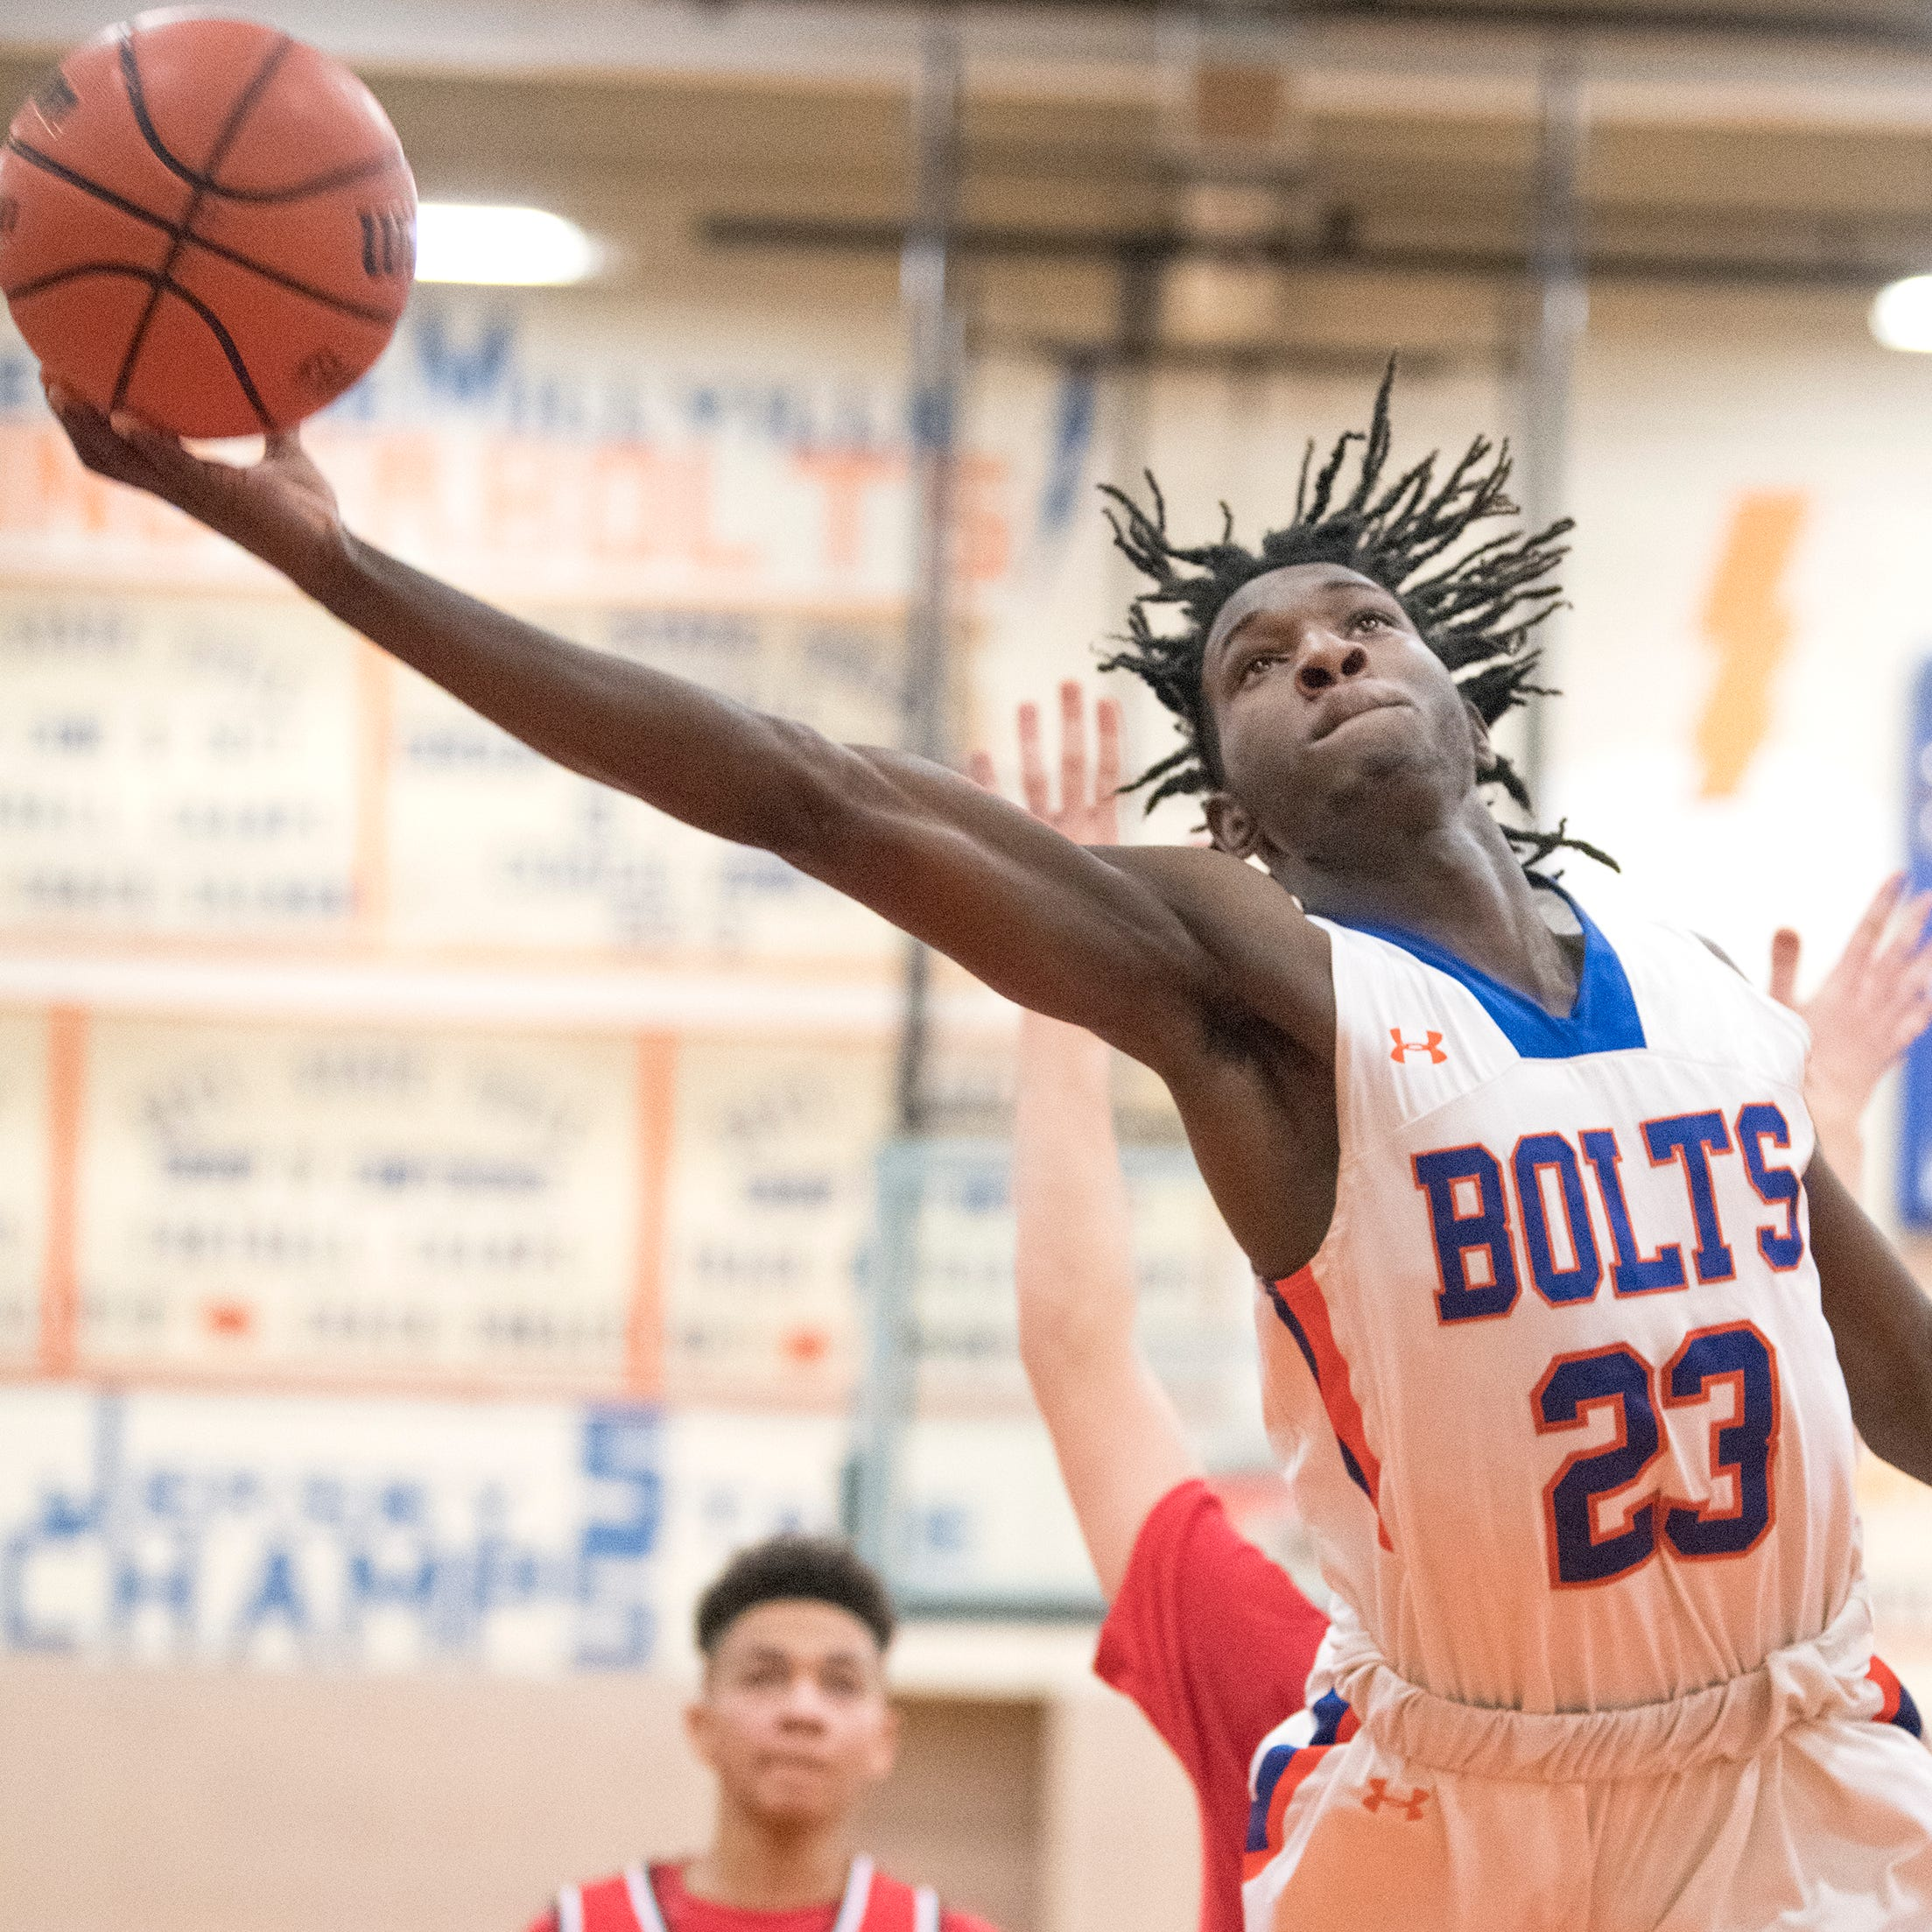 Basketball playoffs: Dominant second-half defense leads Millville to sectional semifinals